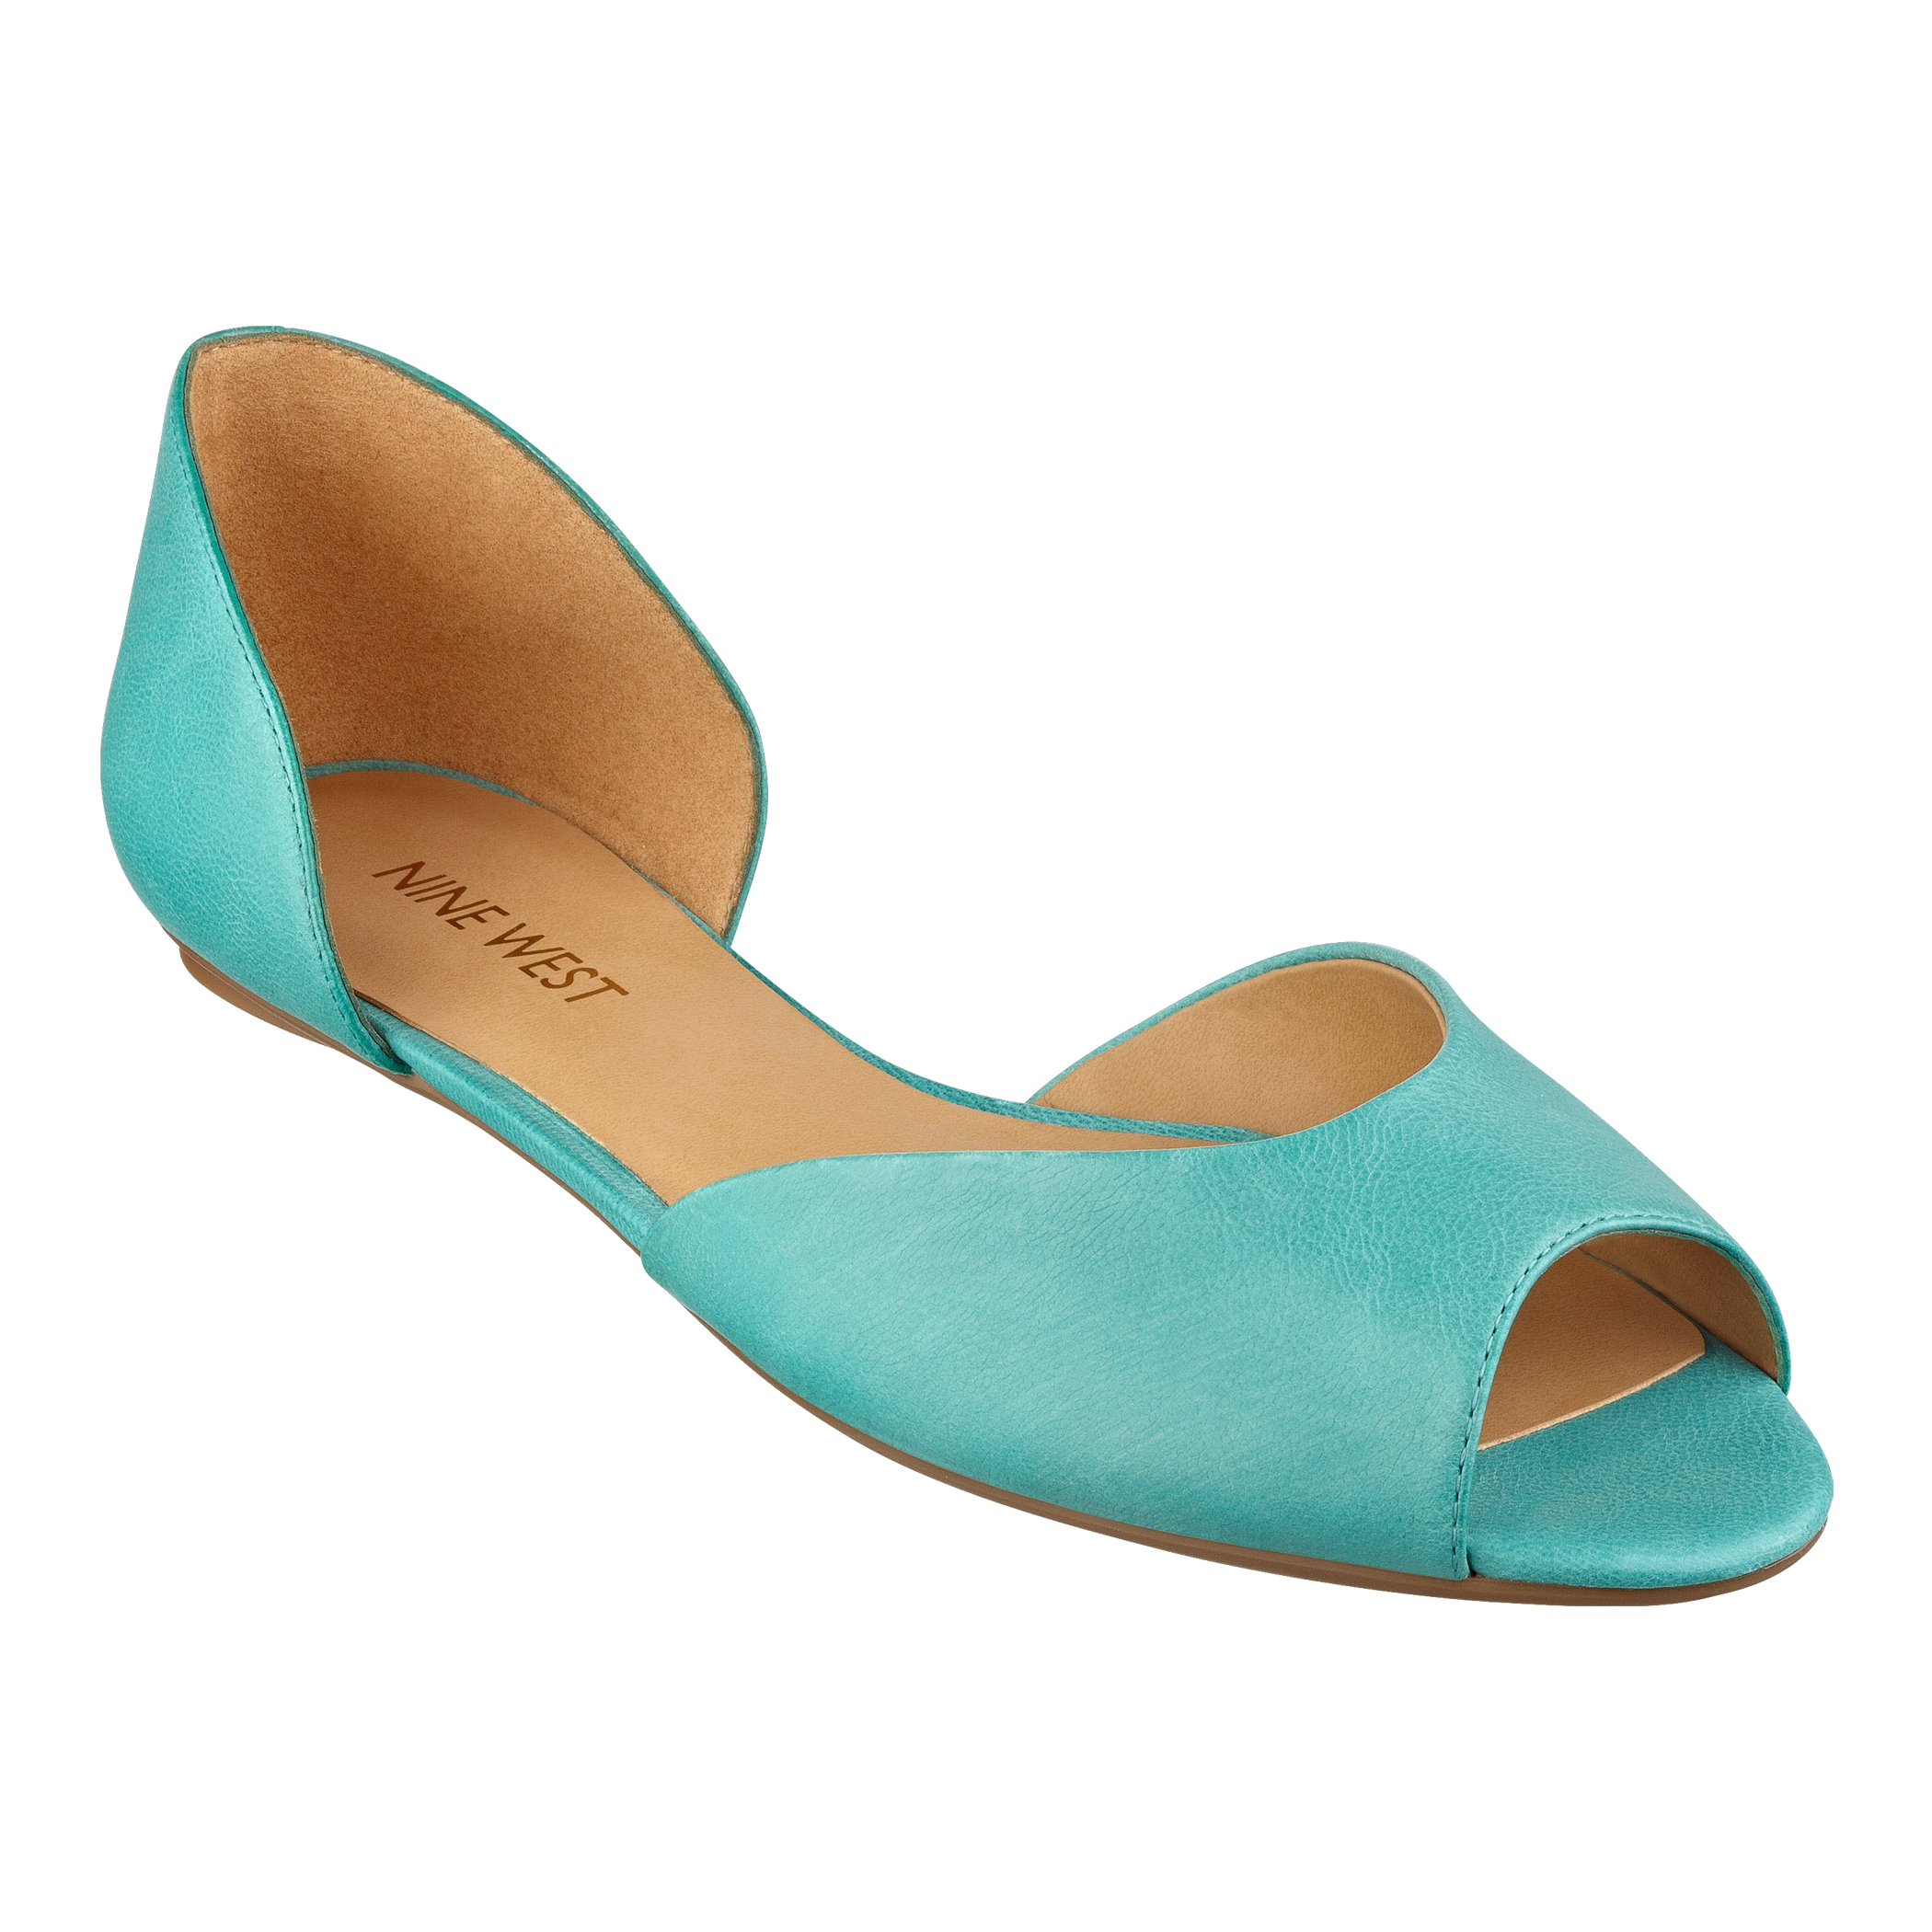 Blue Peep Toe Flats